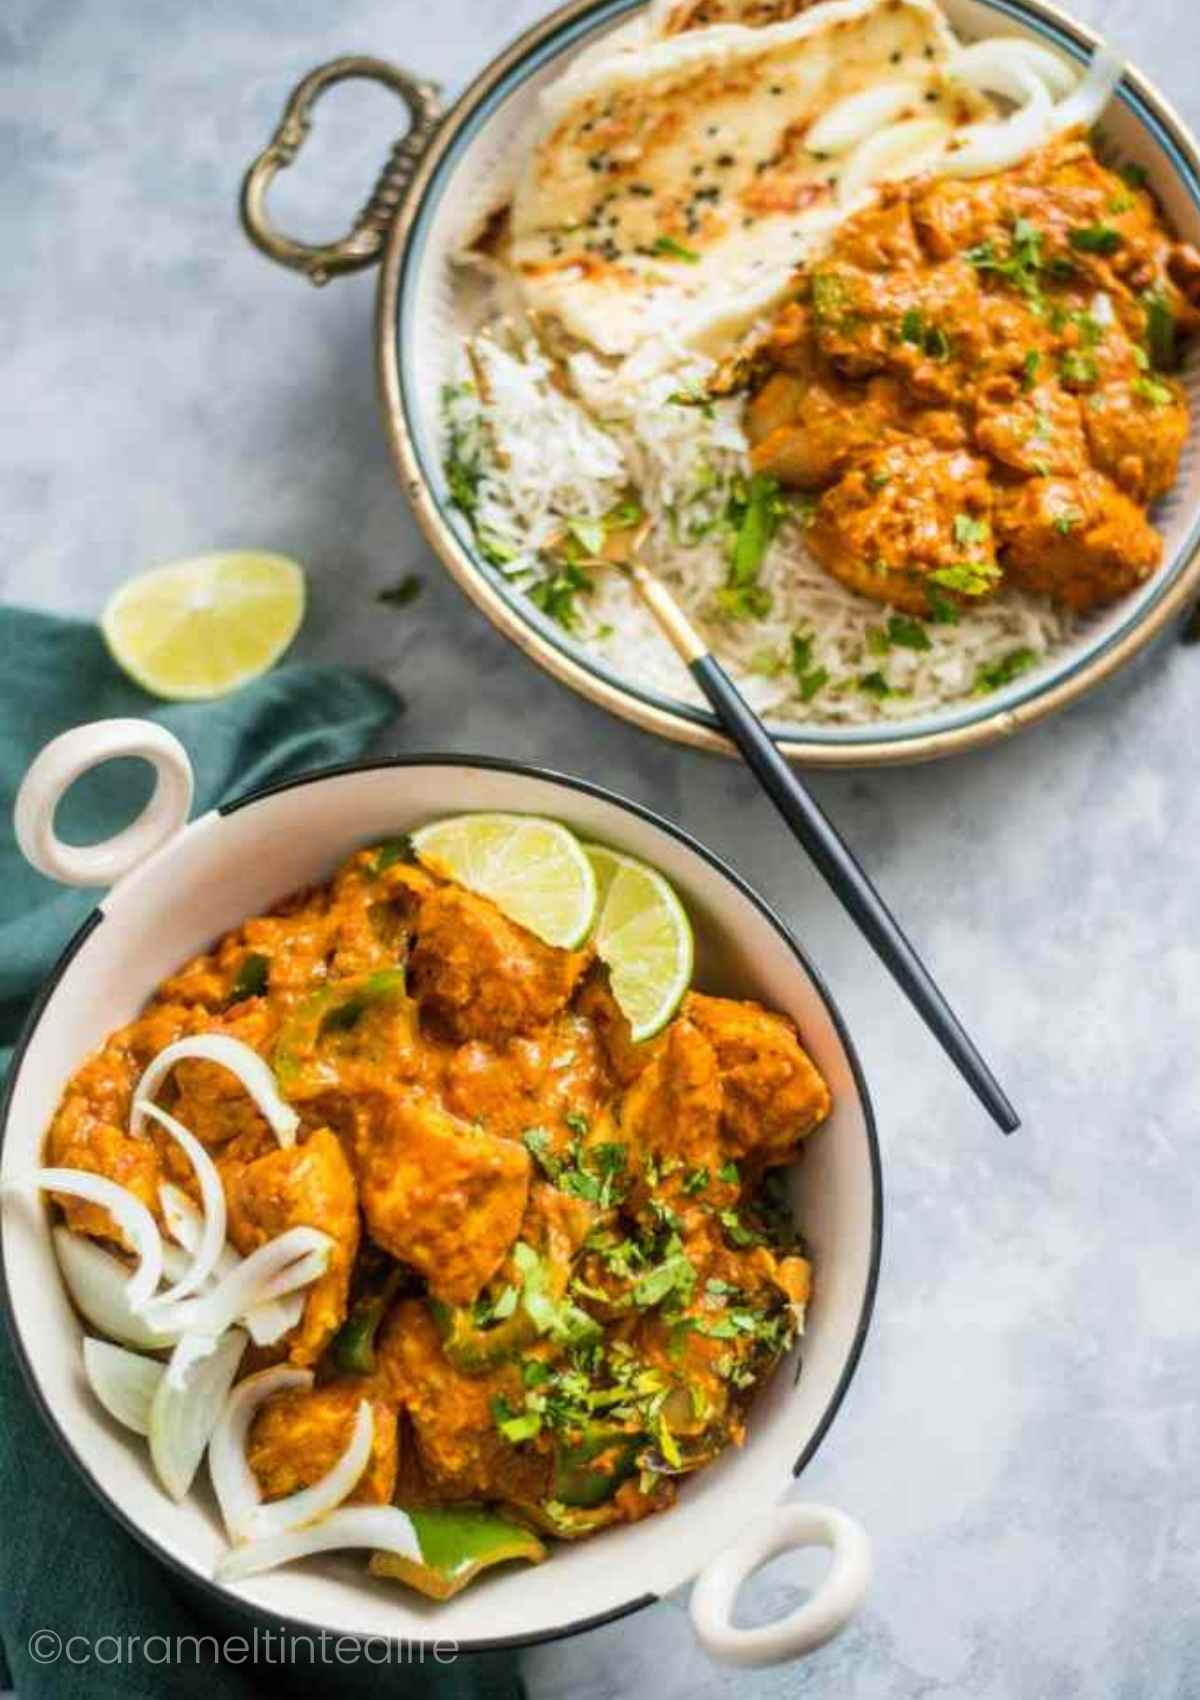 Kadai Chicken served with rice and naan viewed from the top